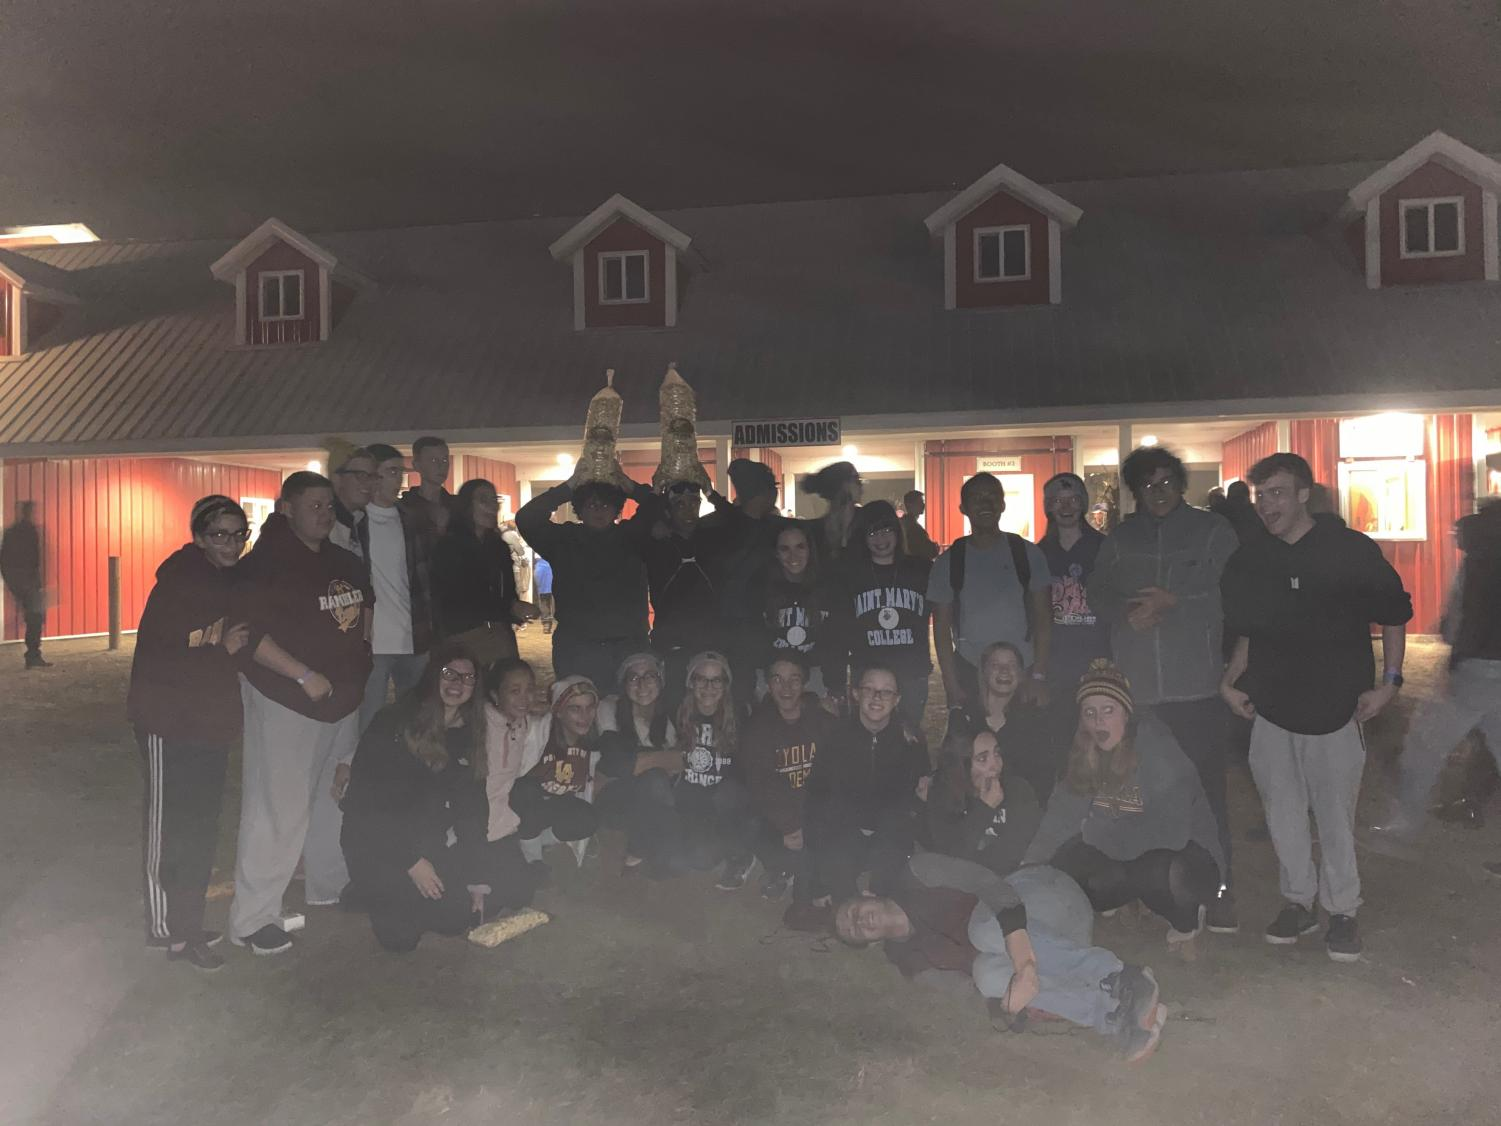 The Loyola band at the end of their trip In front of Richardson's farm.